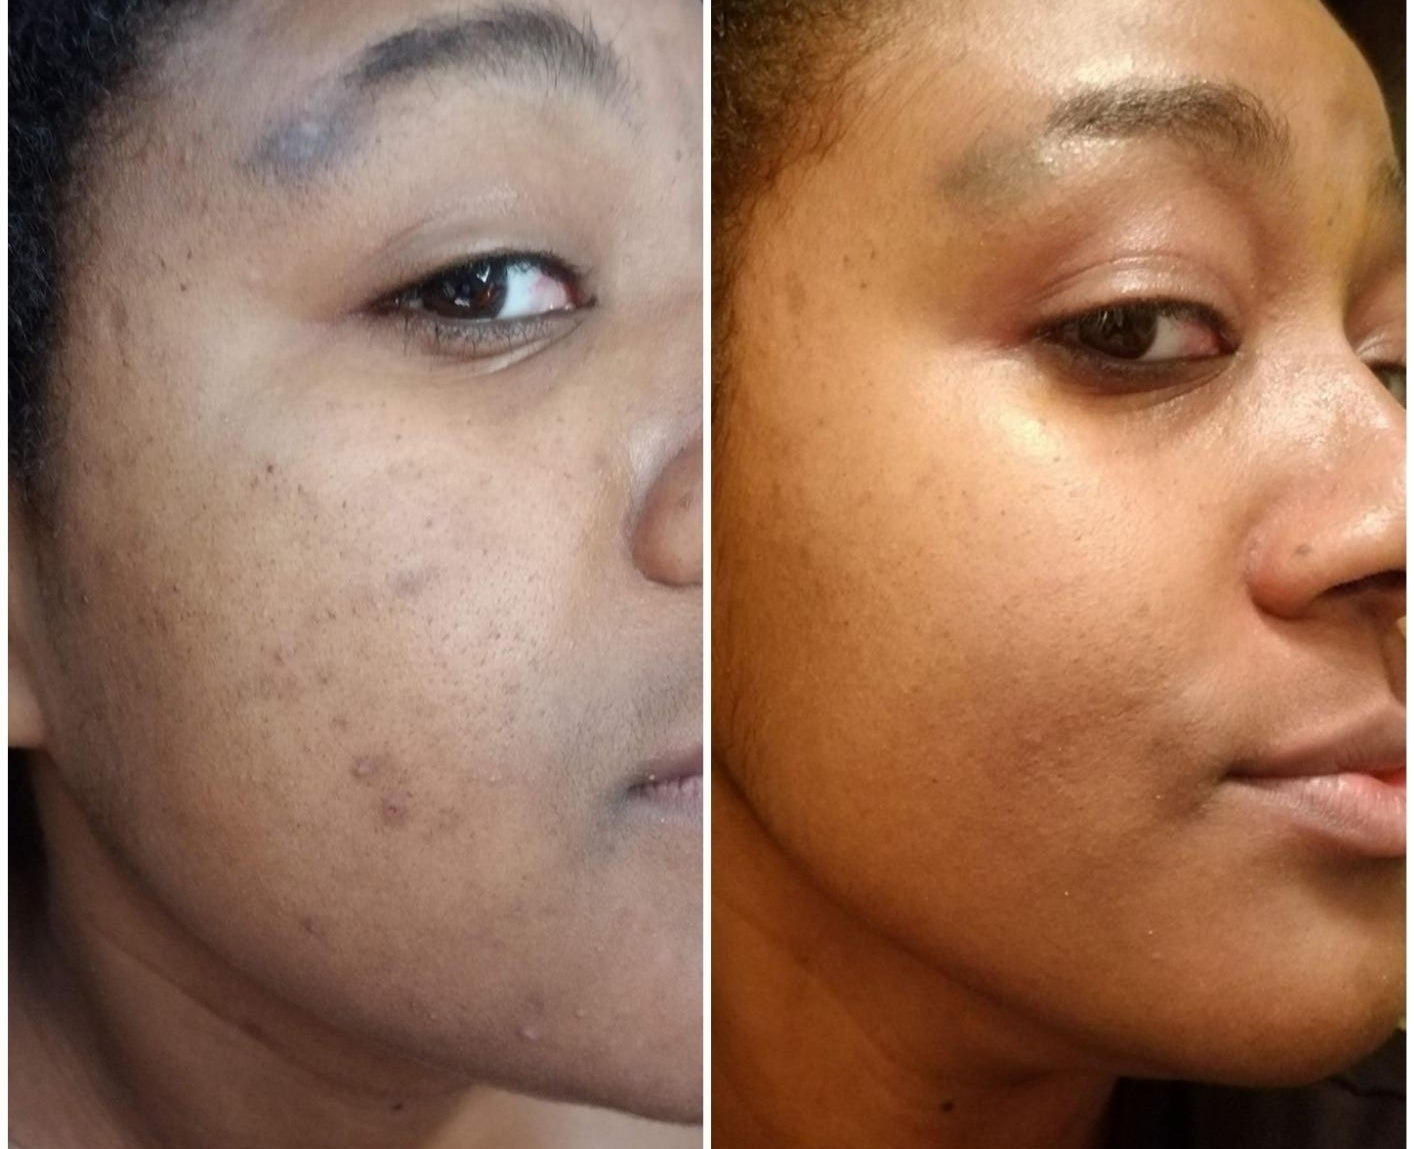 A split photo of a face with some breakouts and the same face with the breakouts gone.